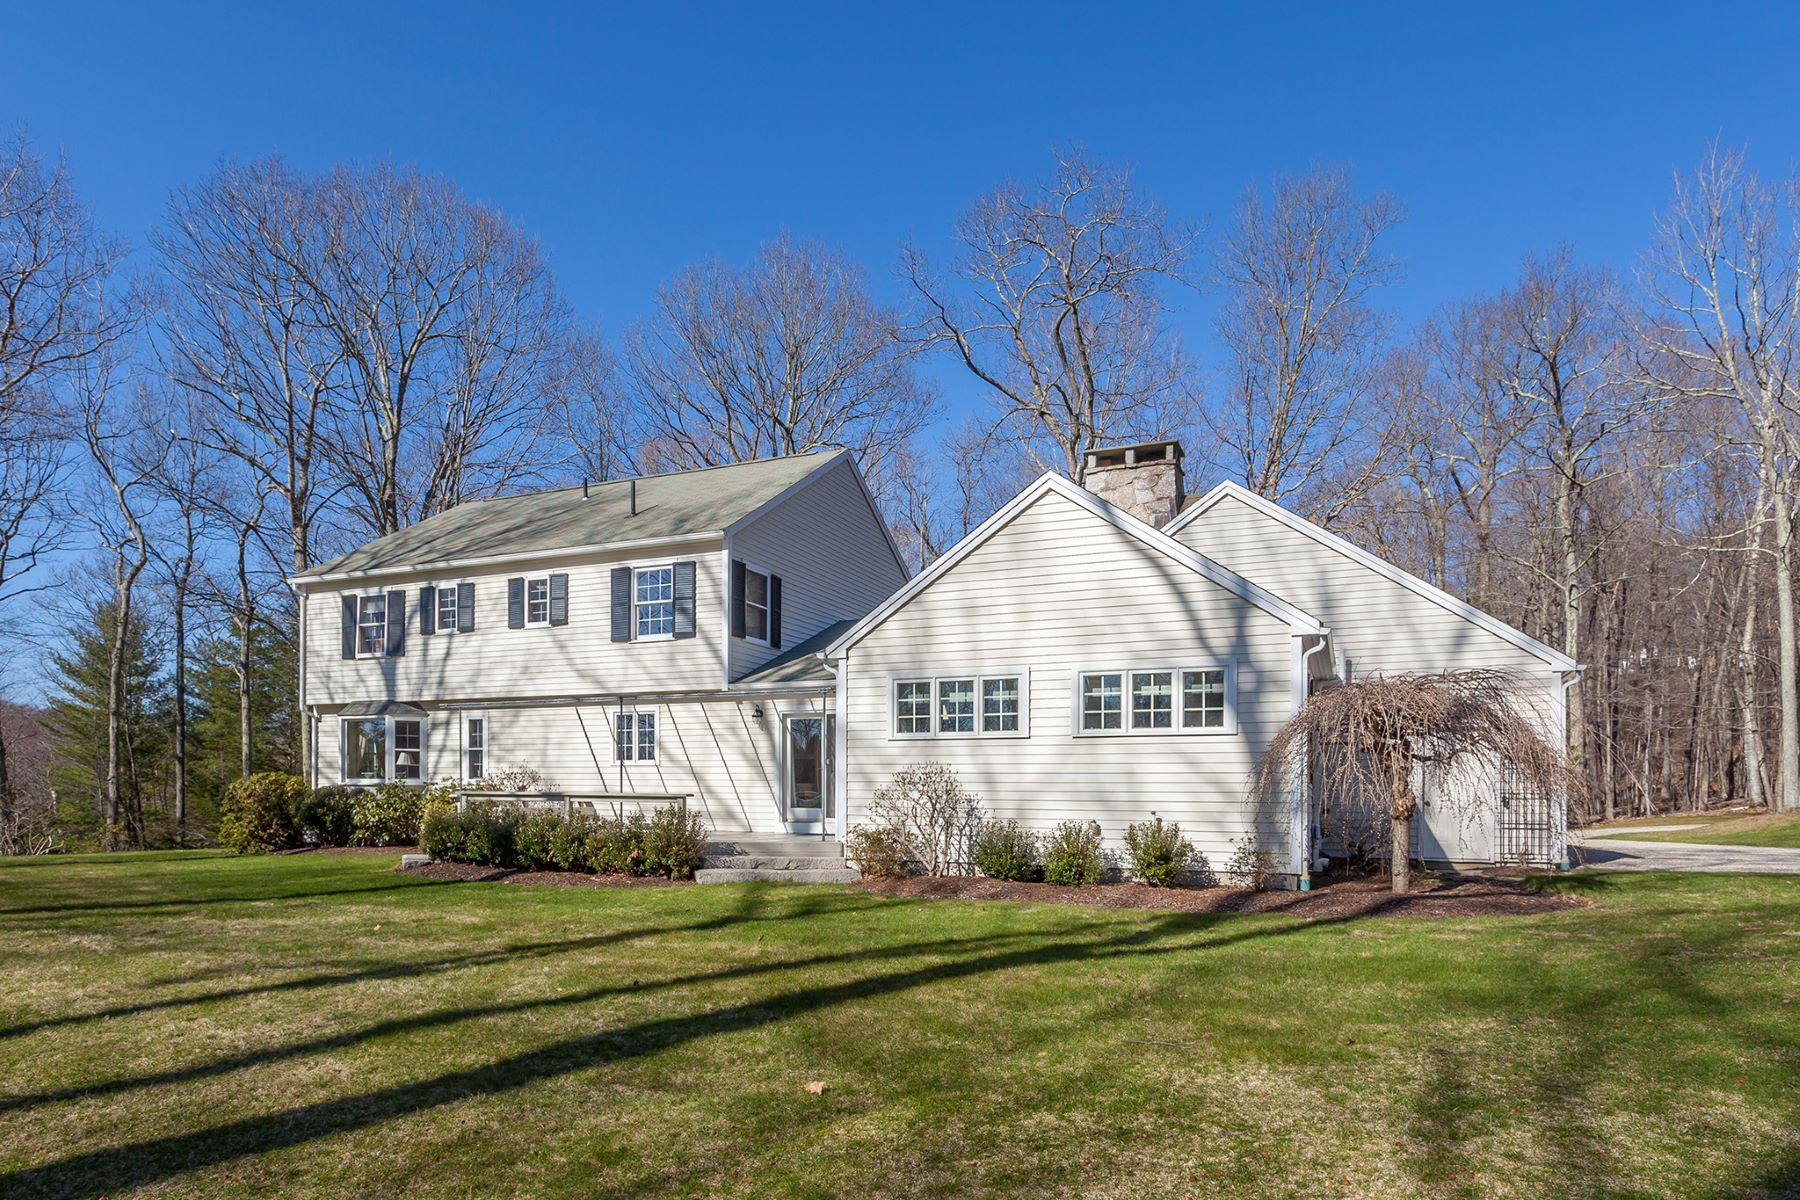 Single Family Home for Sale at Beautifully Designed Colonial 67 Smoky Hollow Rd Washington, Connecticut, 06794 United States